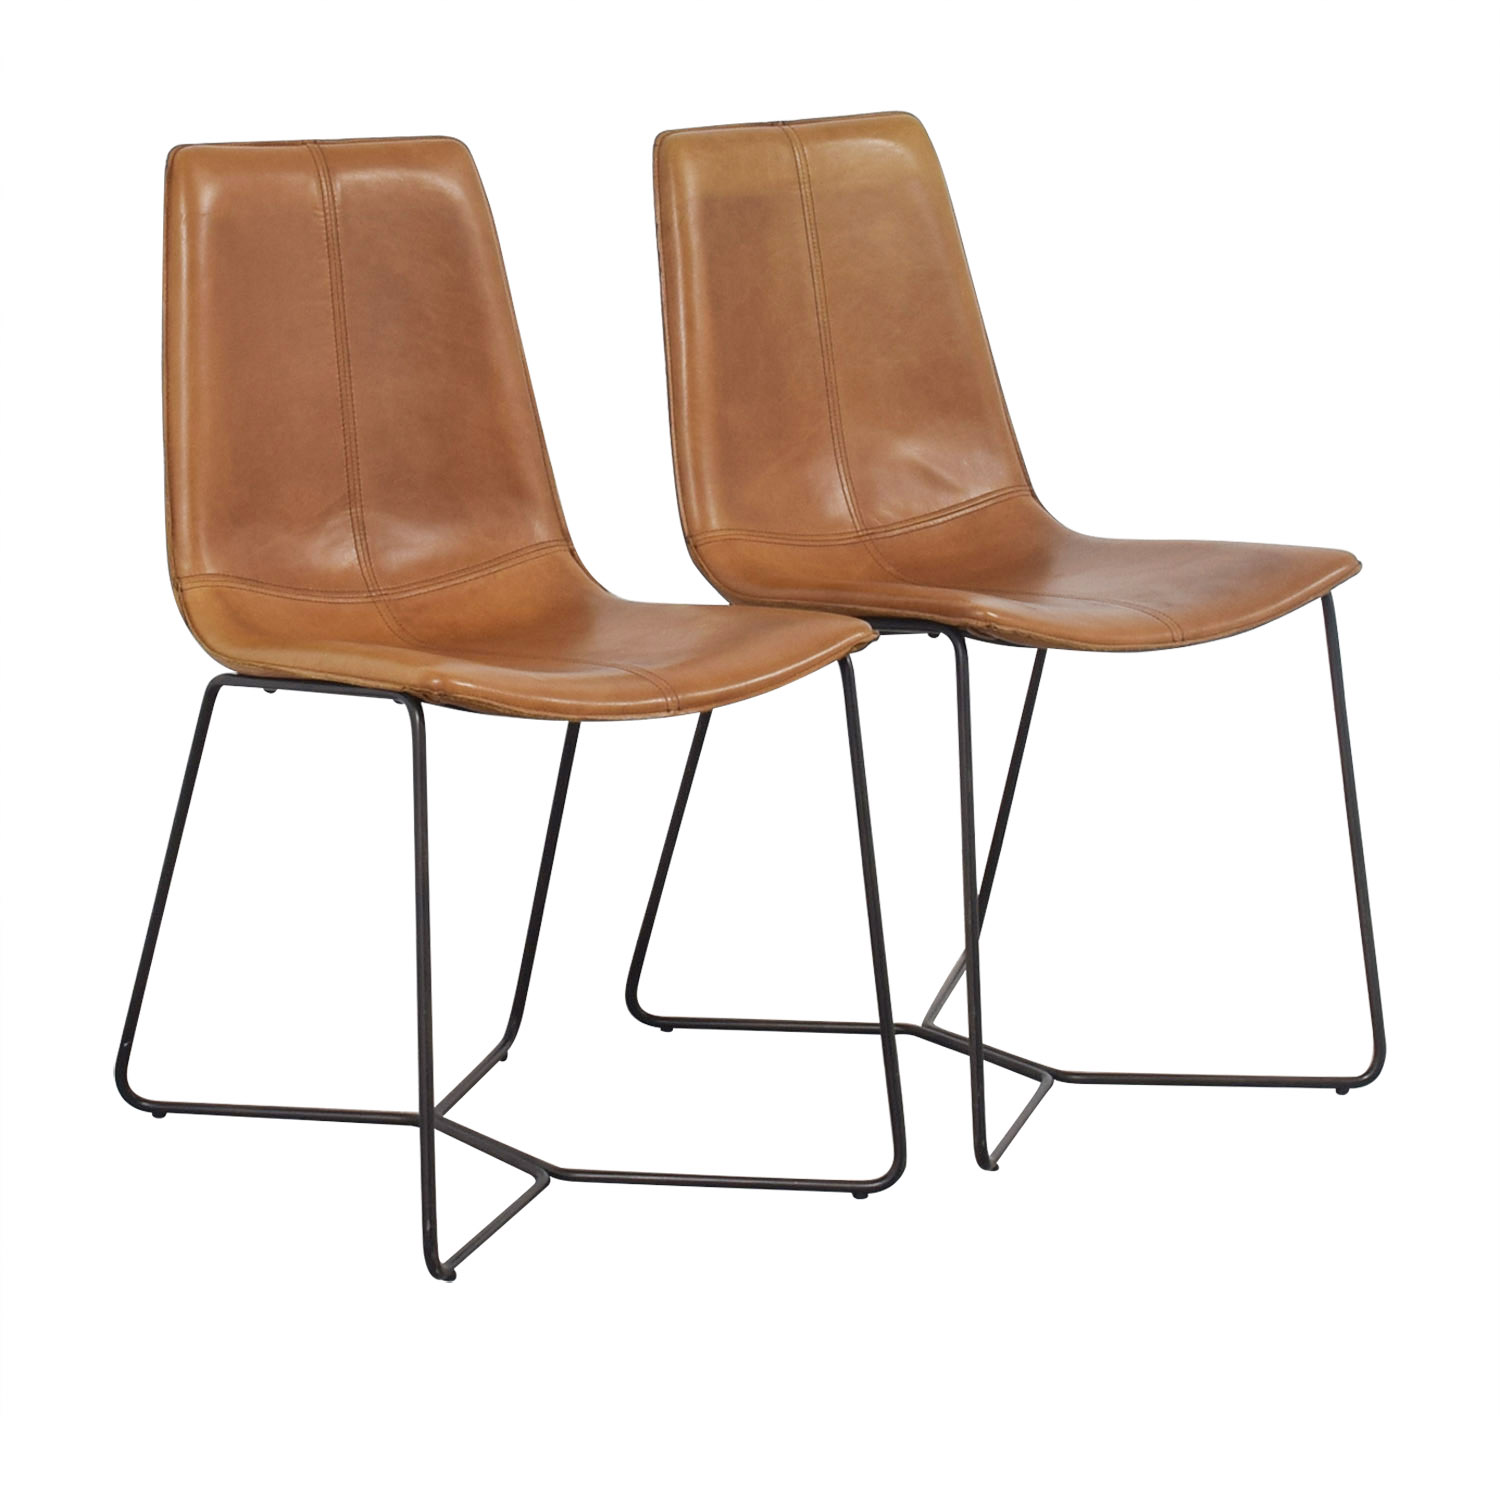 46 Off West Elm West Elm Leather Slope Dining Chairs